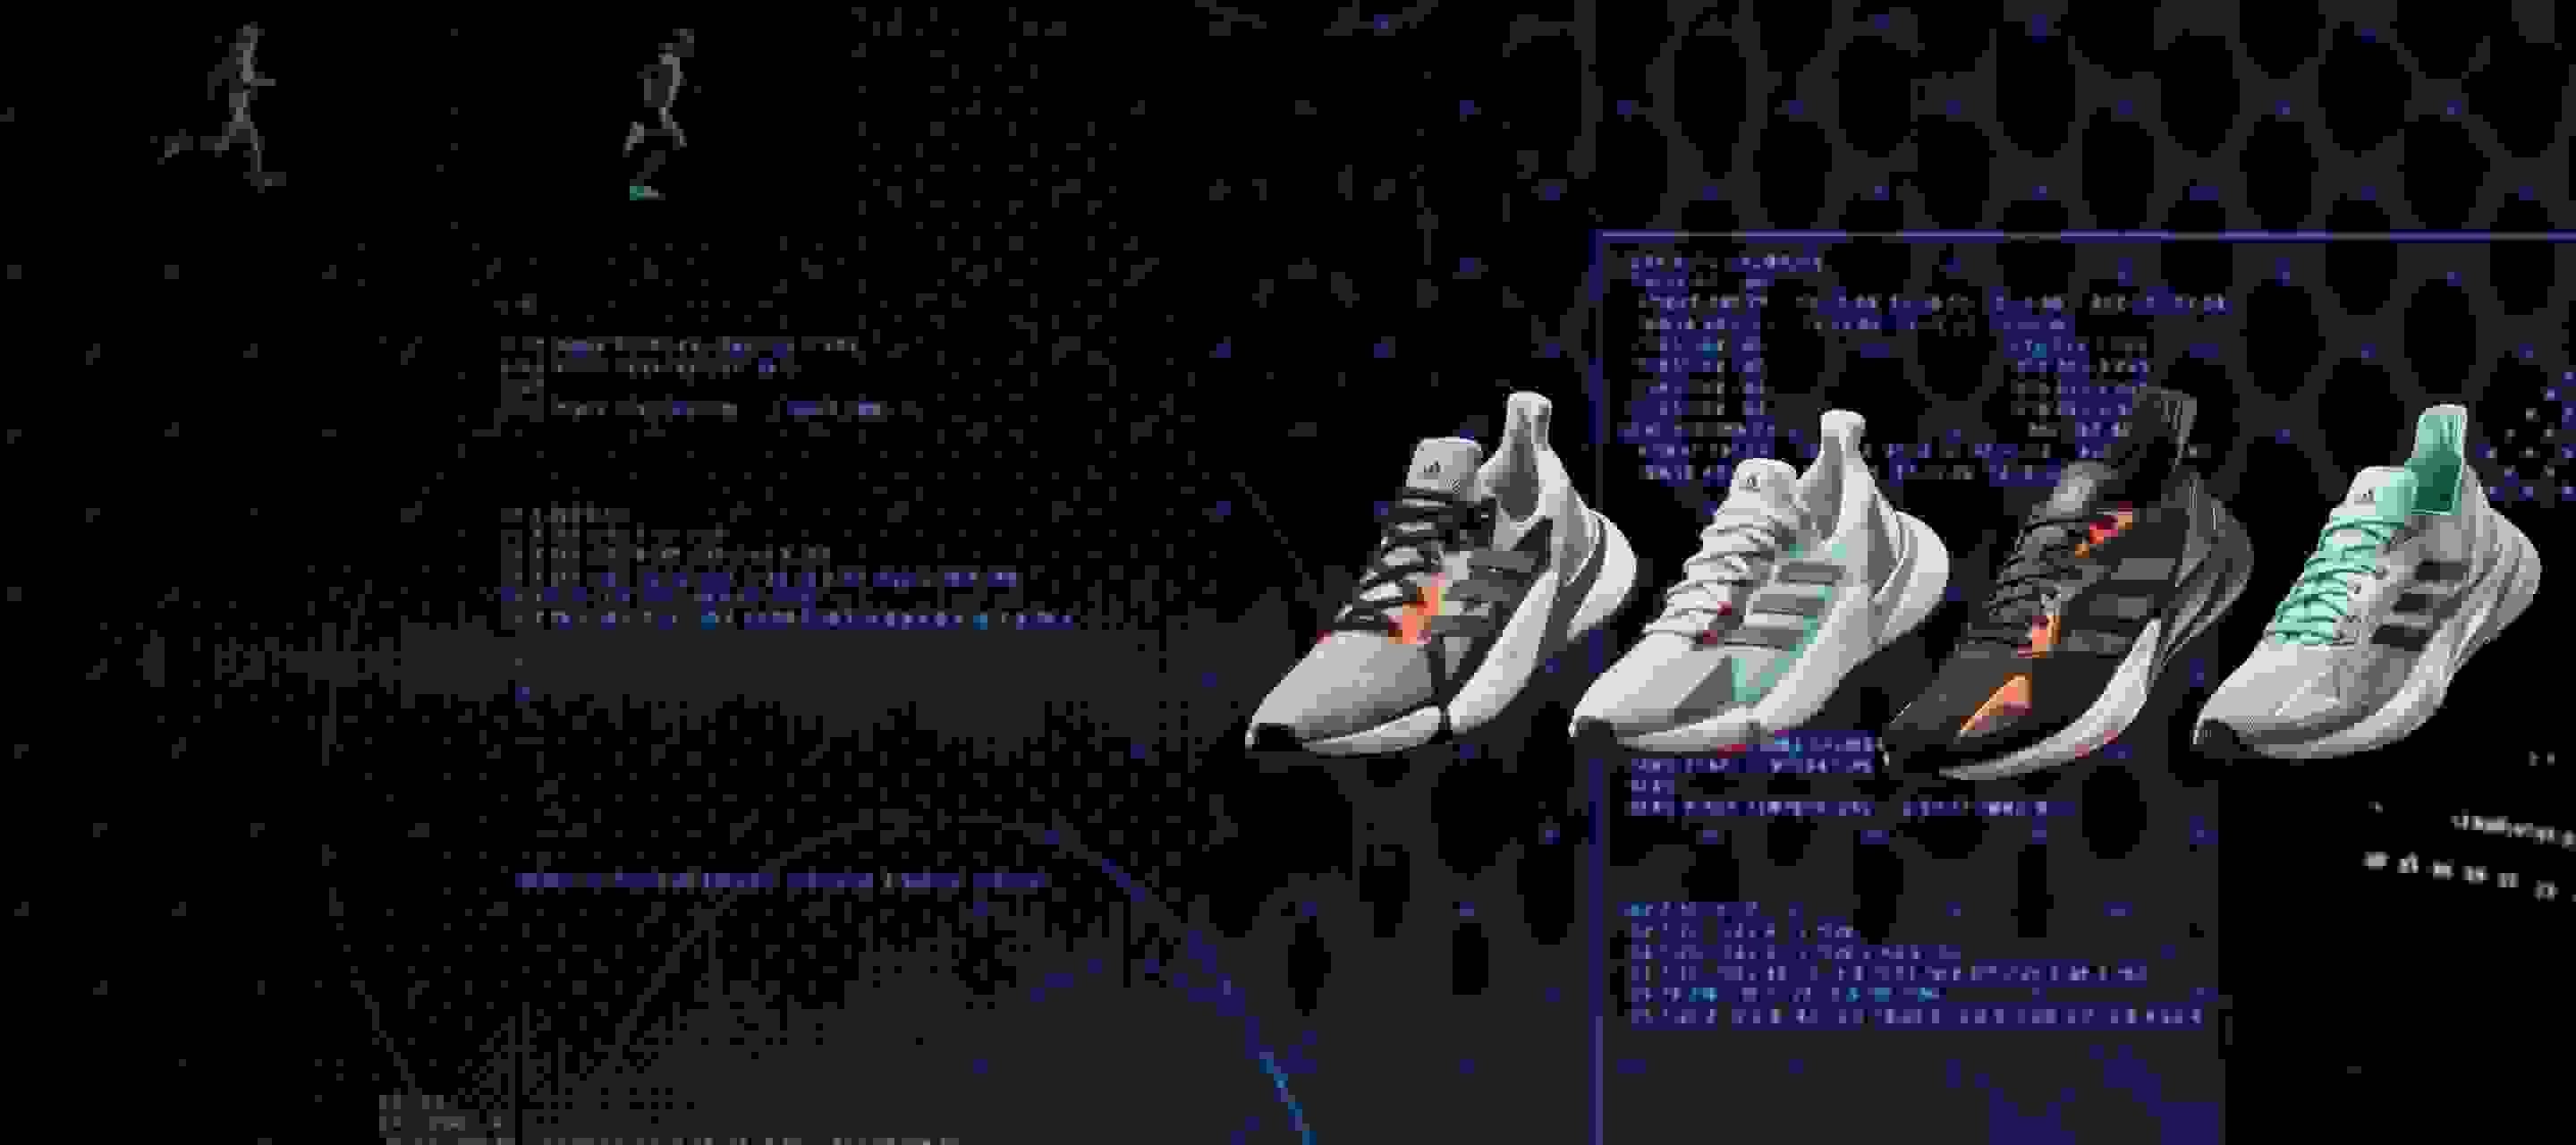 X9000 running collection